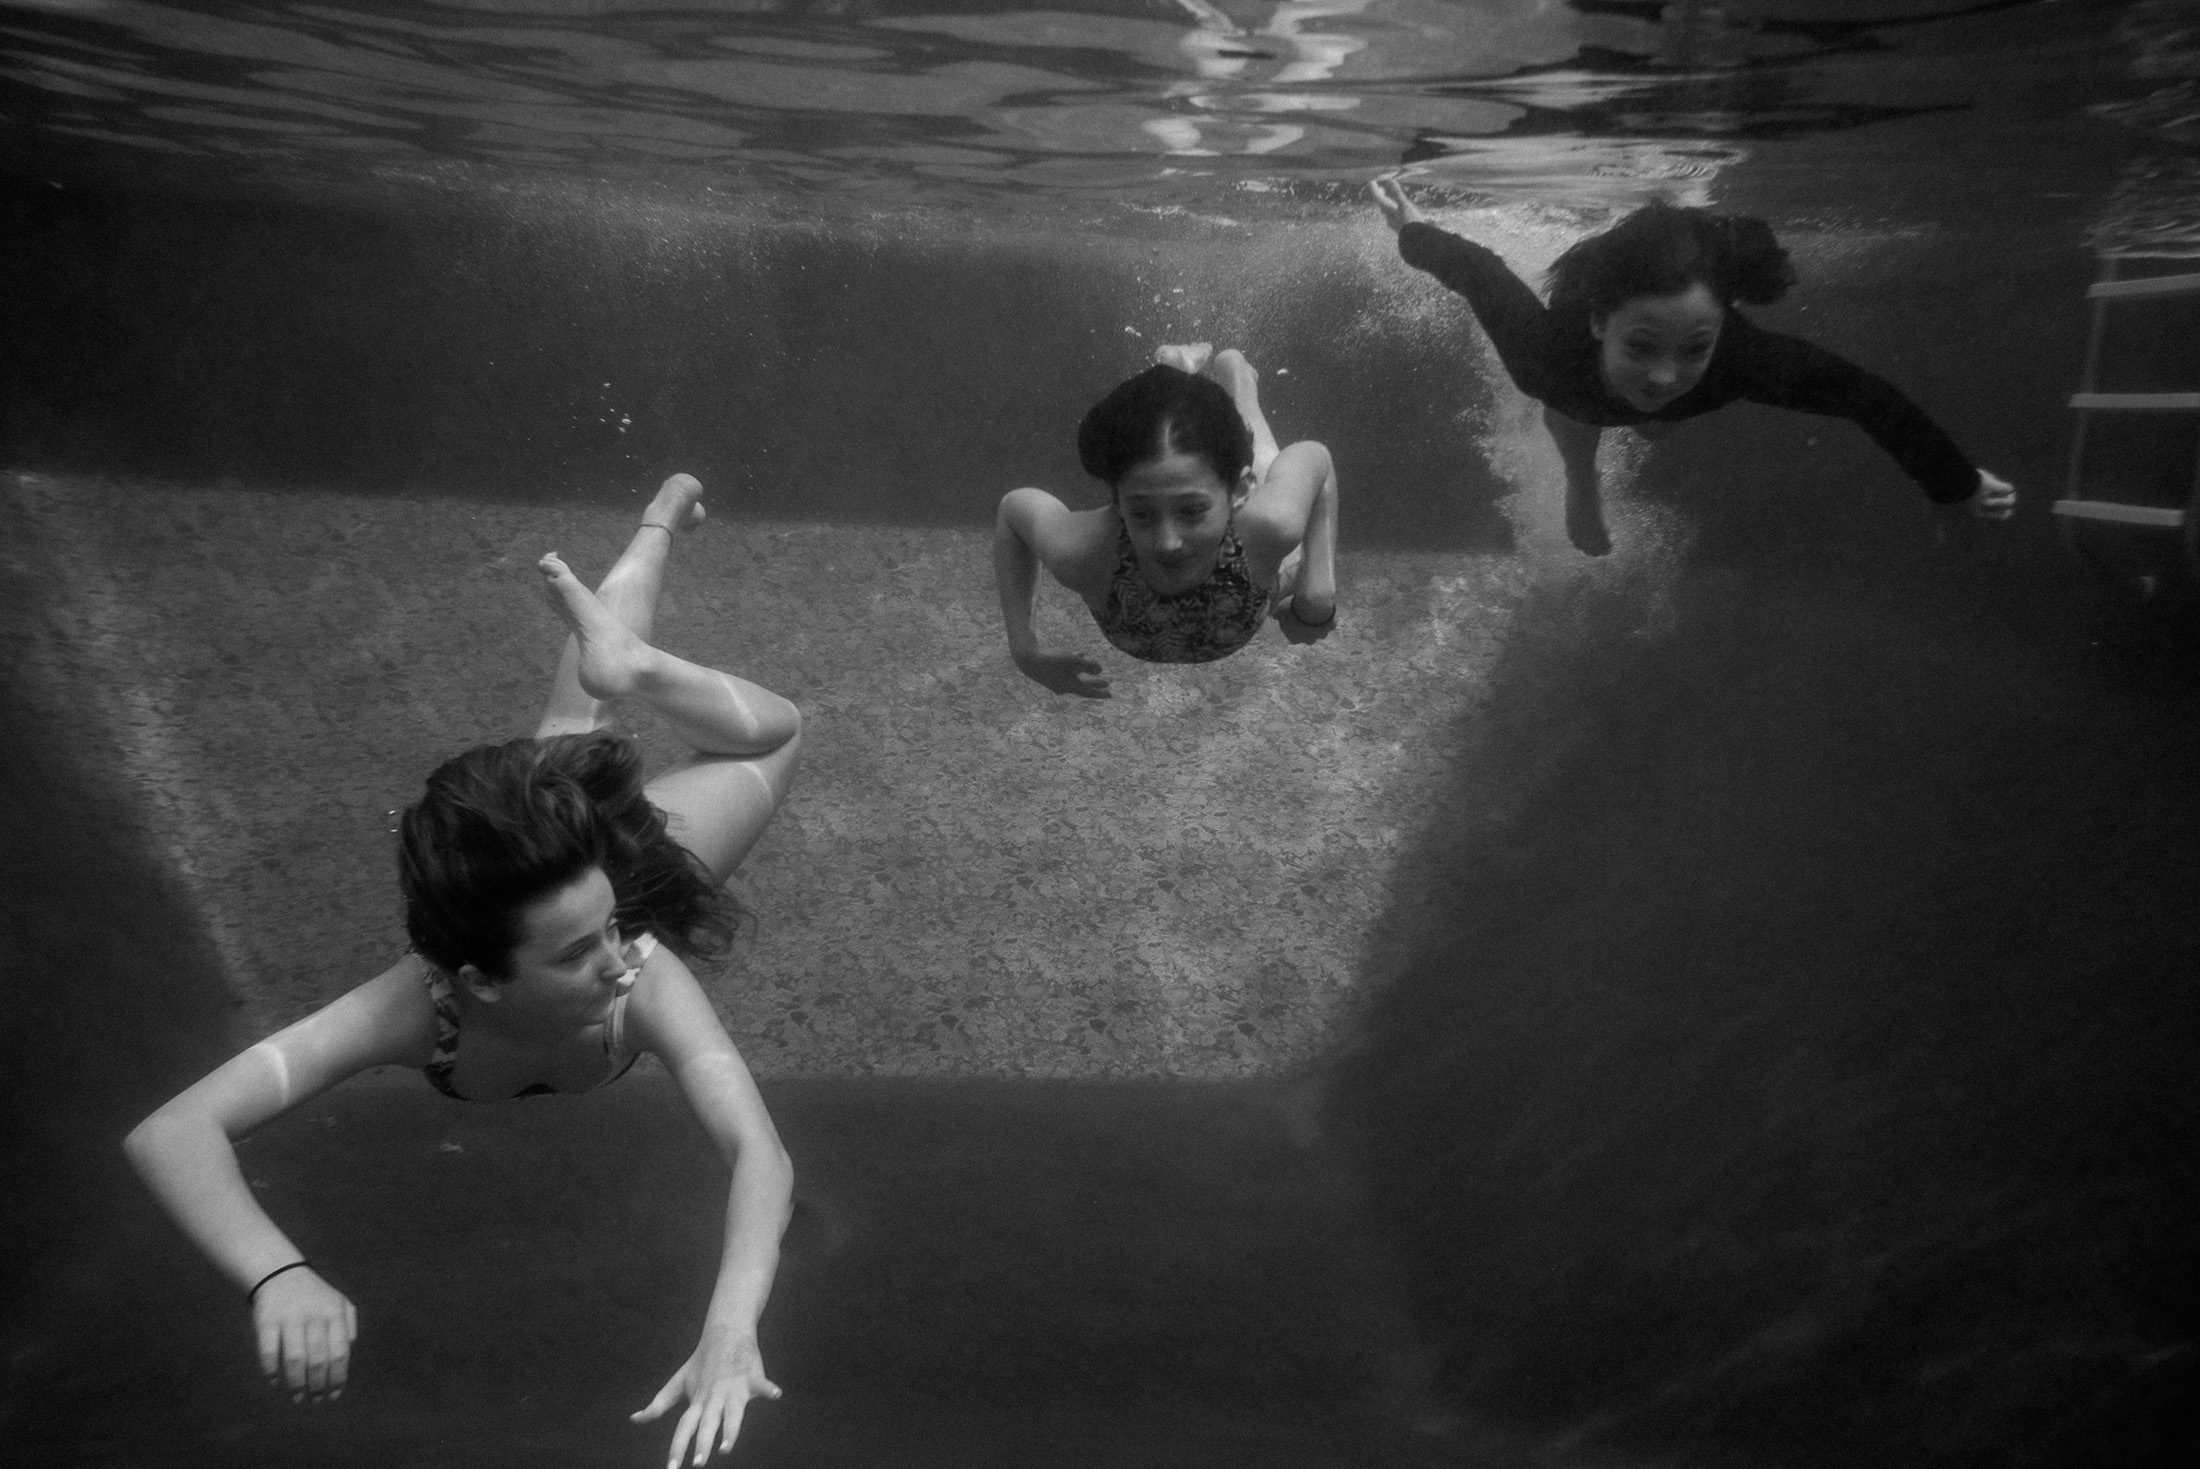 underwater_girls-web